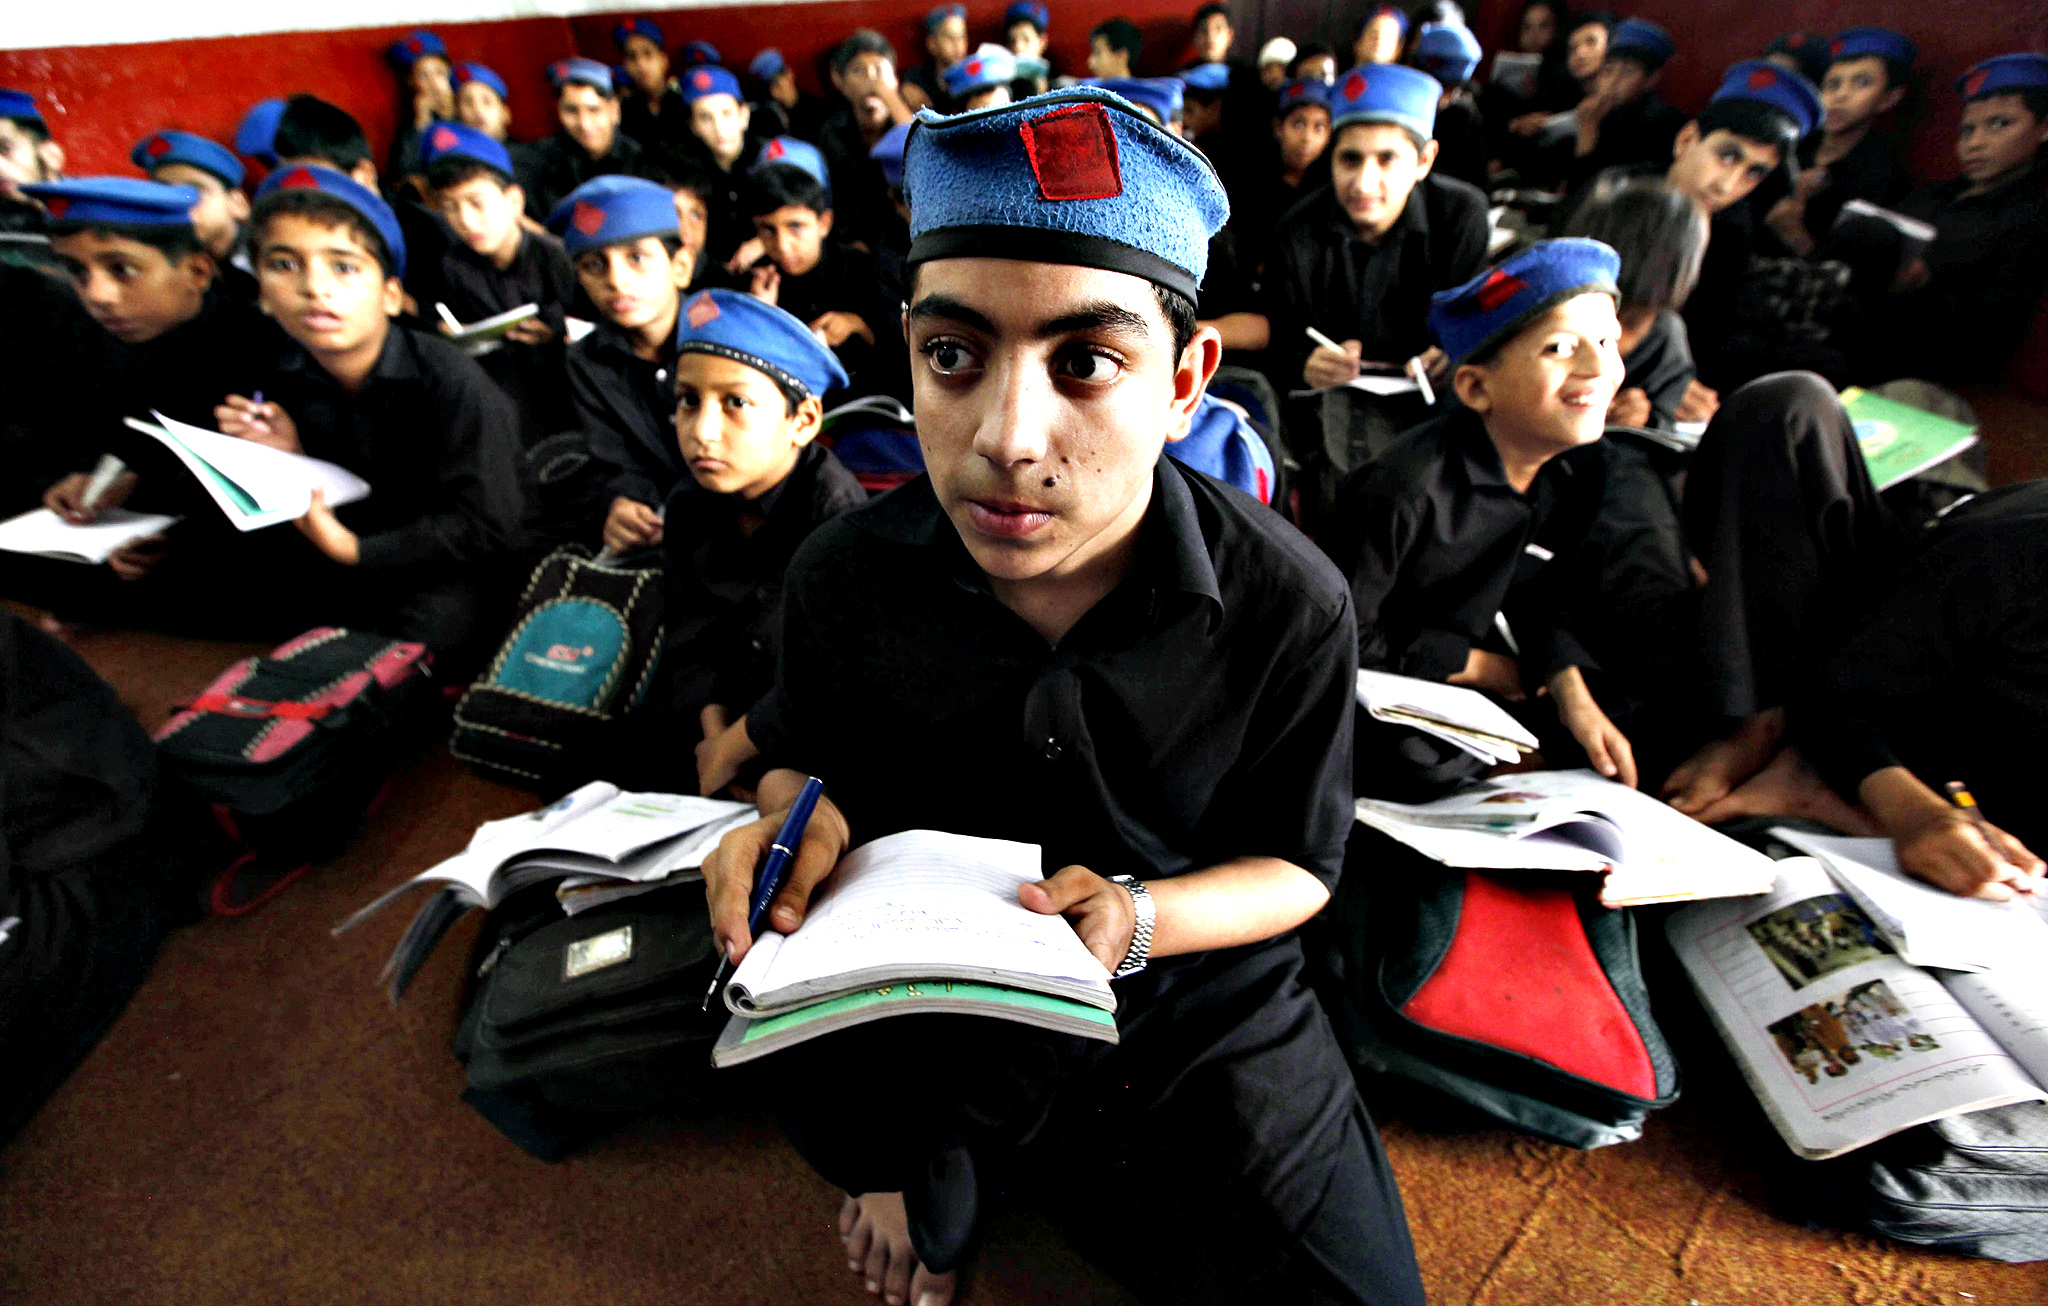 Pakistani boys attend school on the International Student Day in Peshawar, Pakistan, 17 November 2014.  International student Day is marked annually on 17 November.